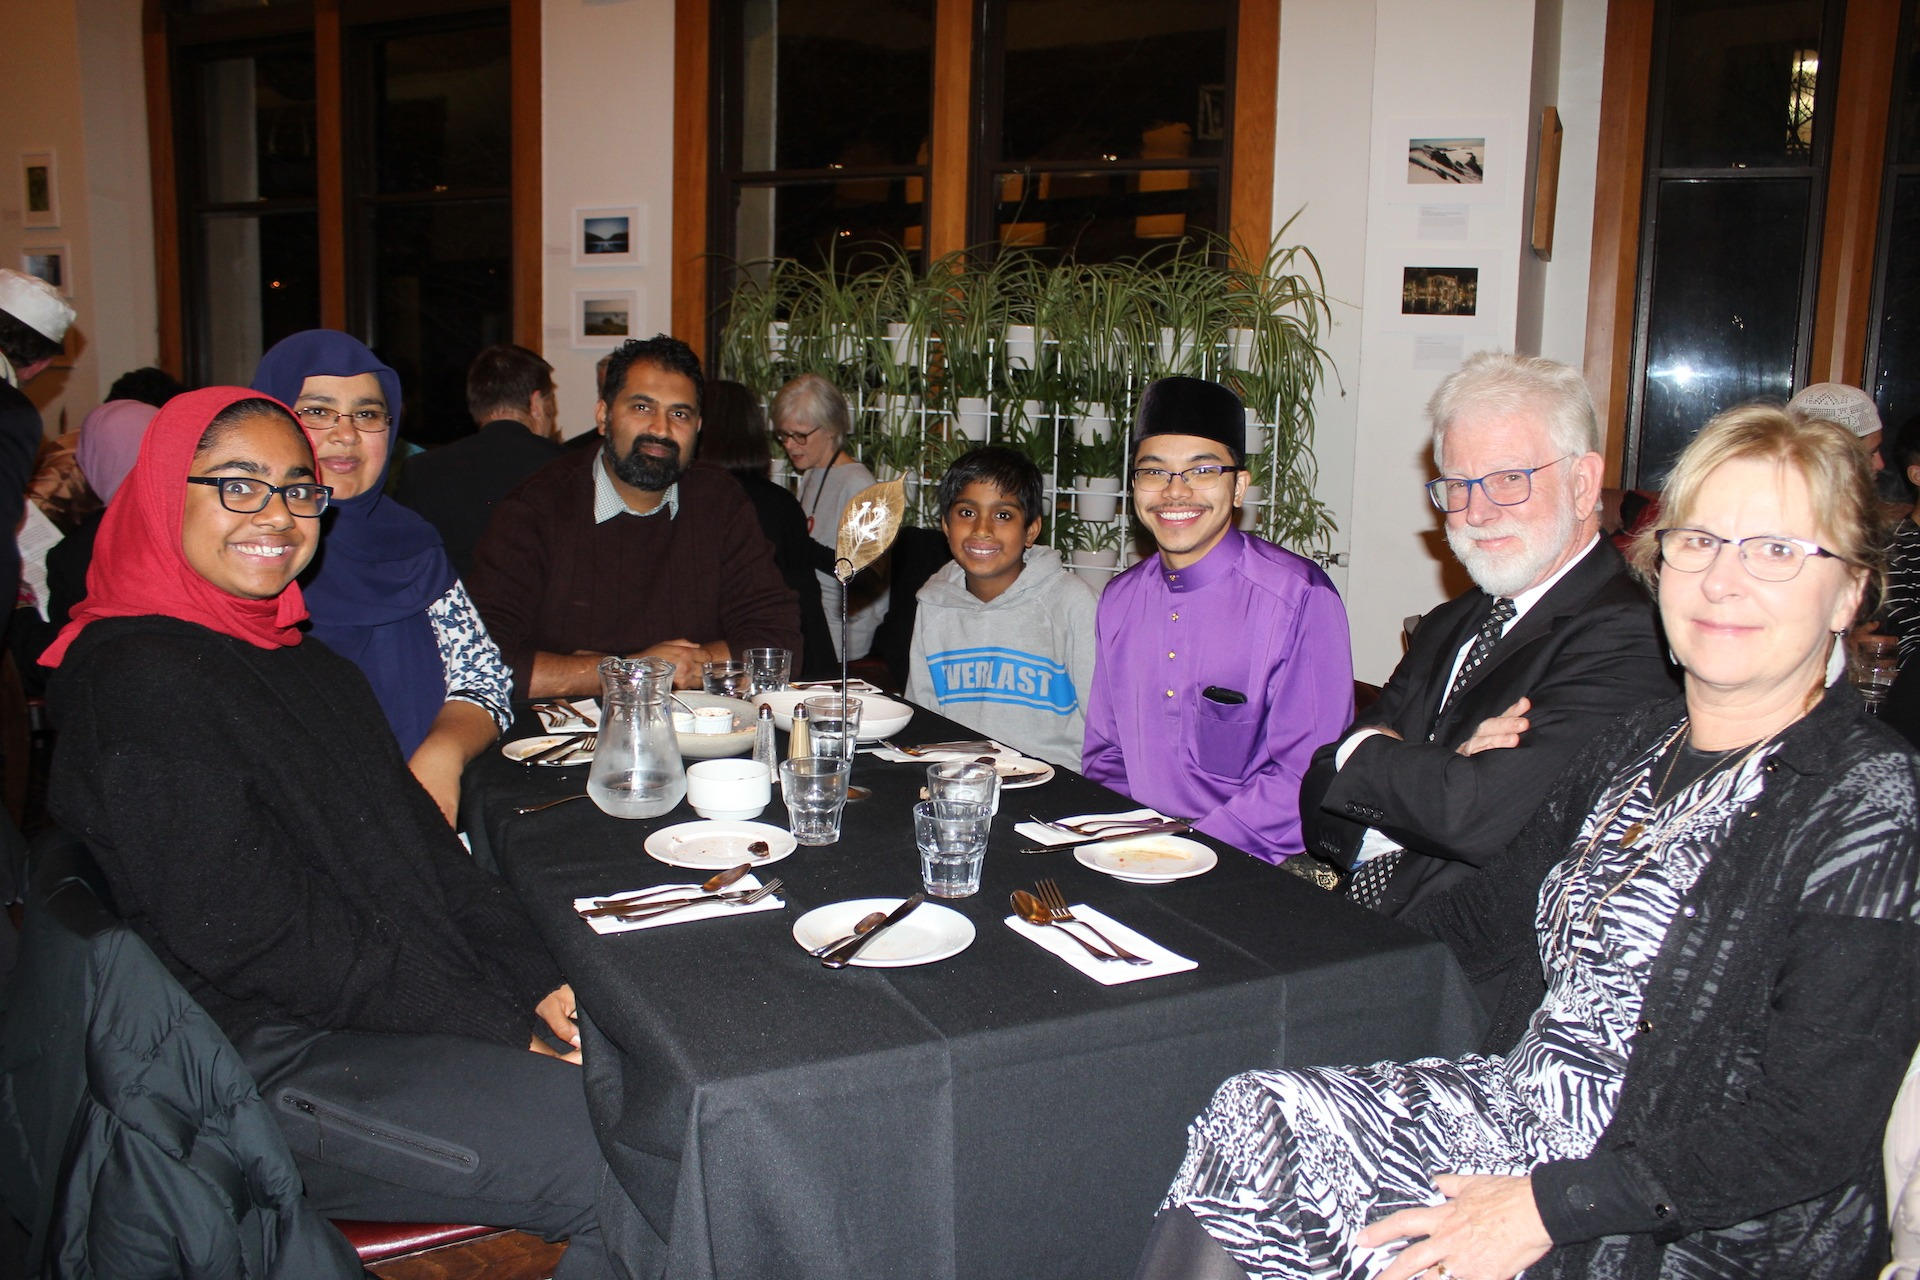 A cosy Iftar dinner in Dunedin's cold